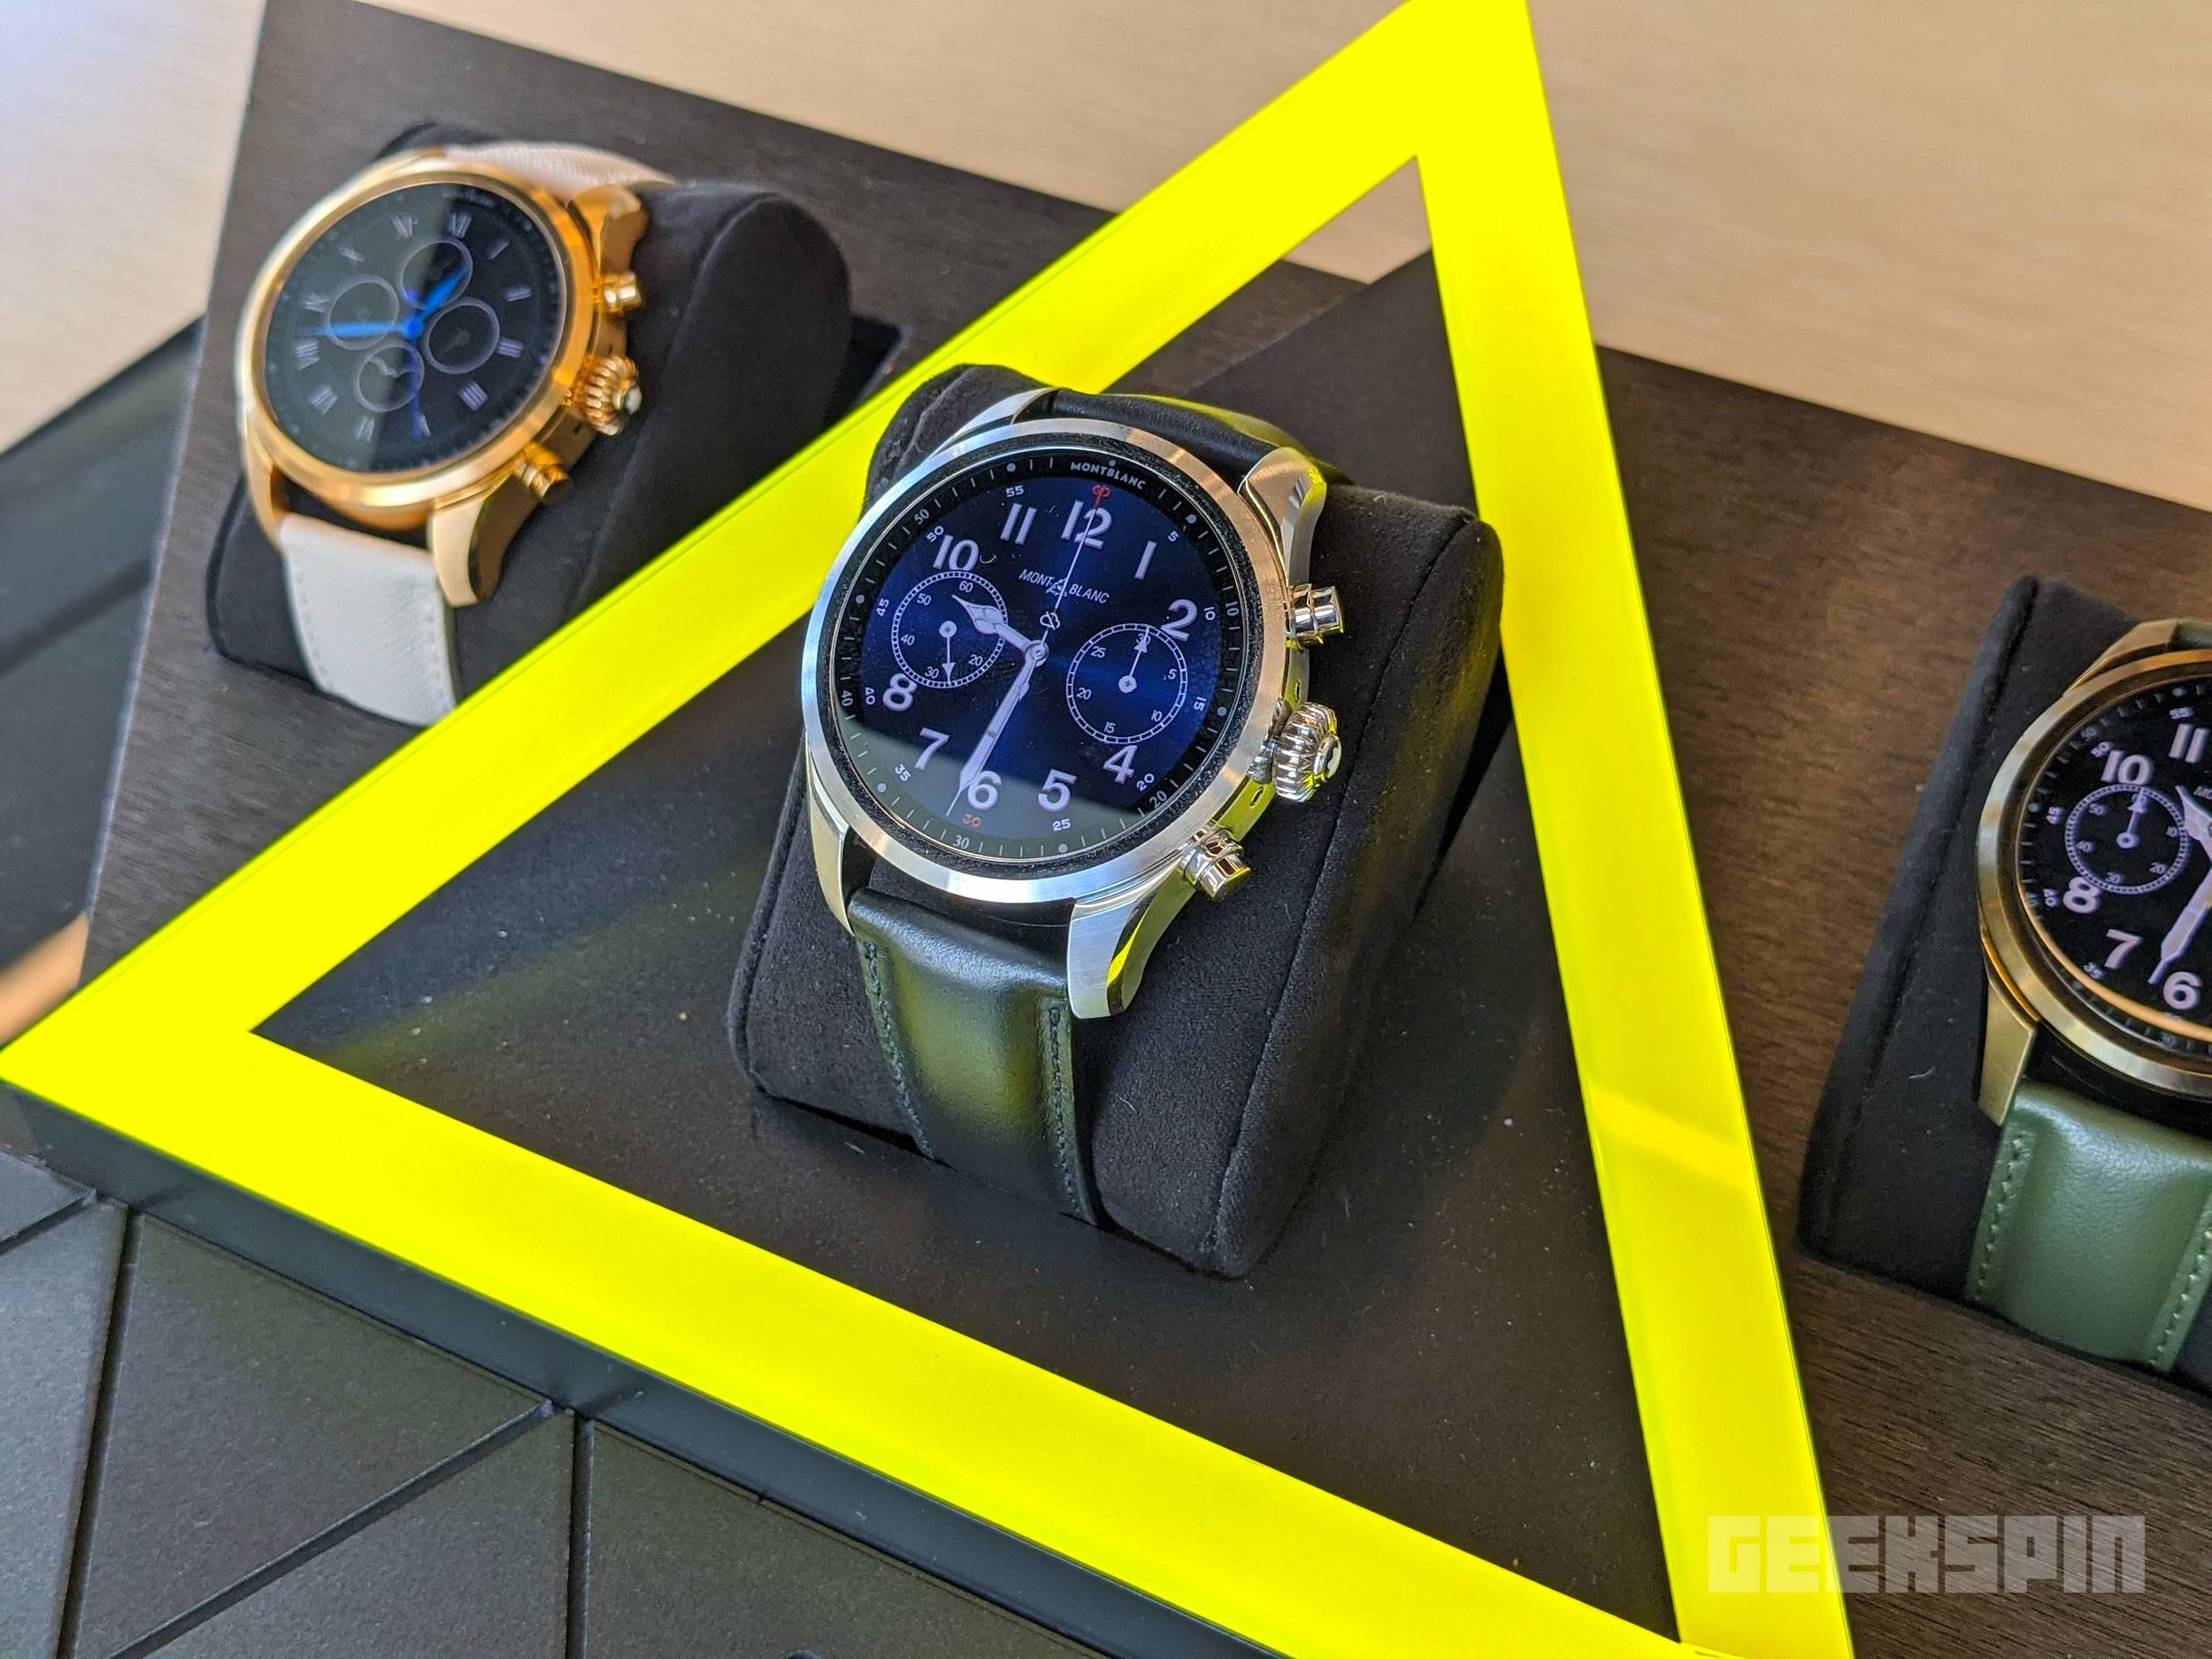 Montblanc's Summit 2+ is the first Wear OS smartwatch with LTE 13